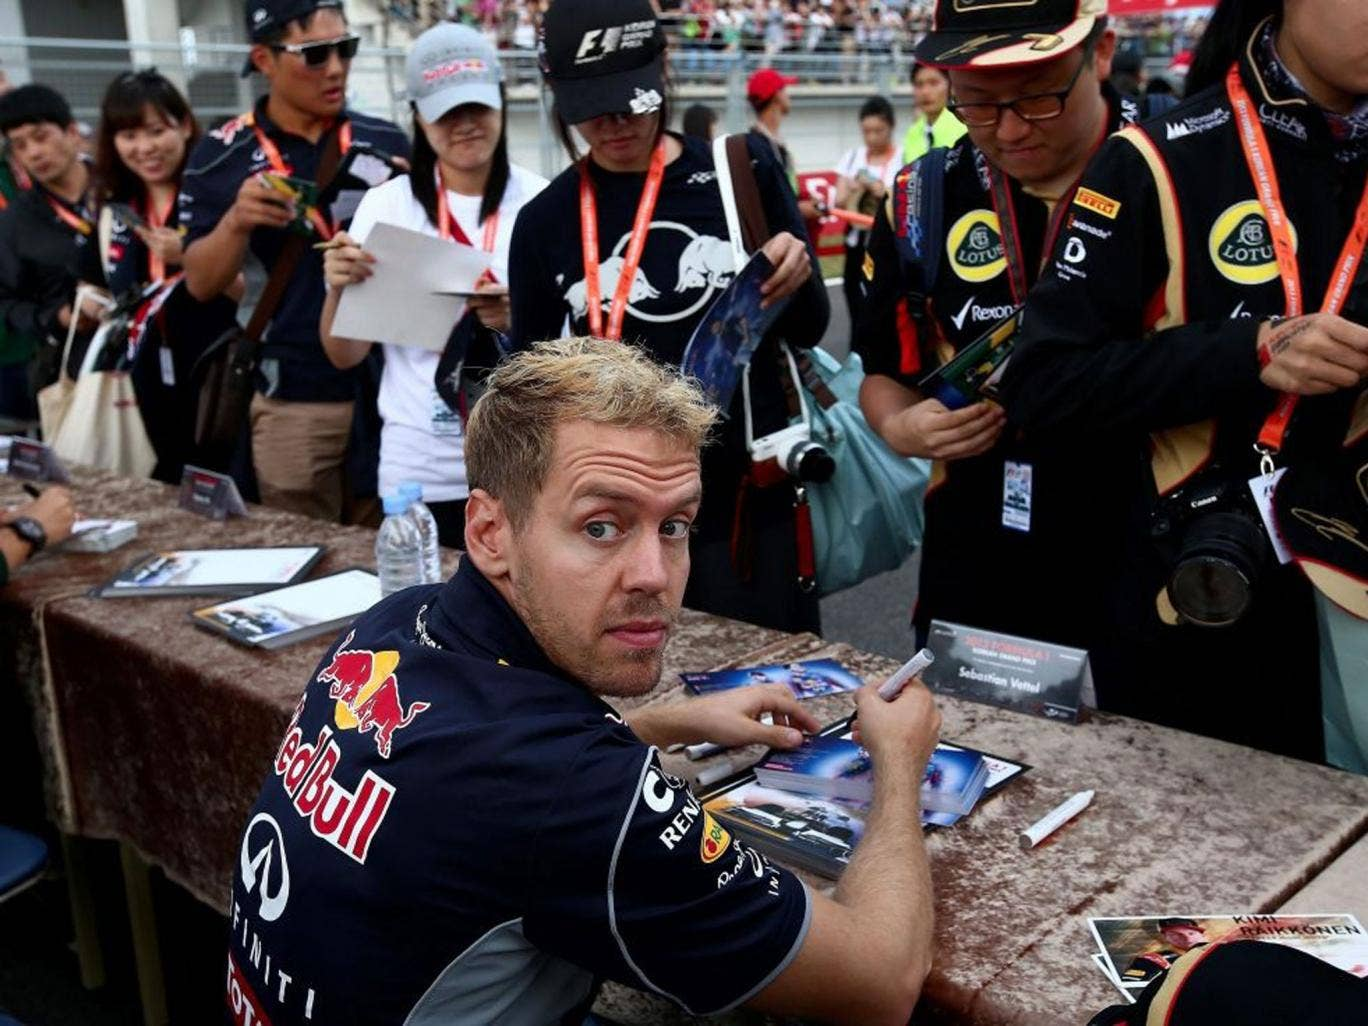 Sign of the times: Sebastian Vettel is an unpopular world champion